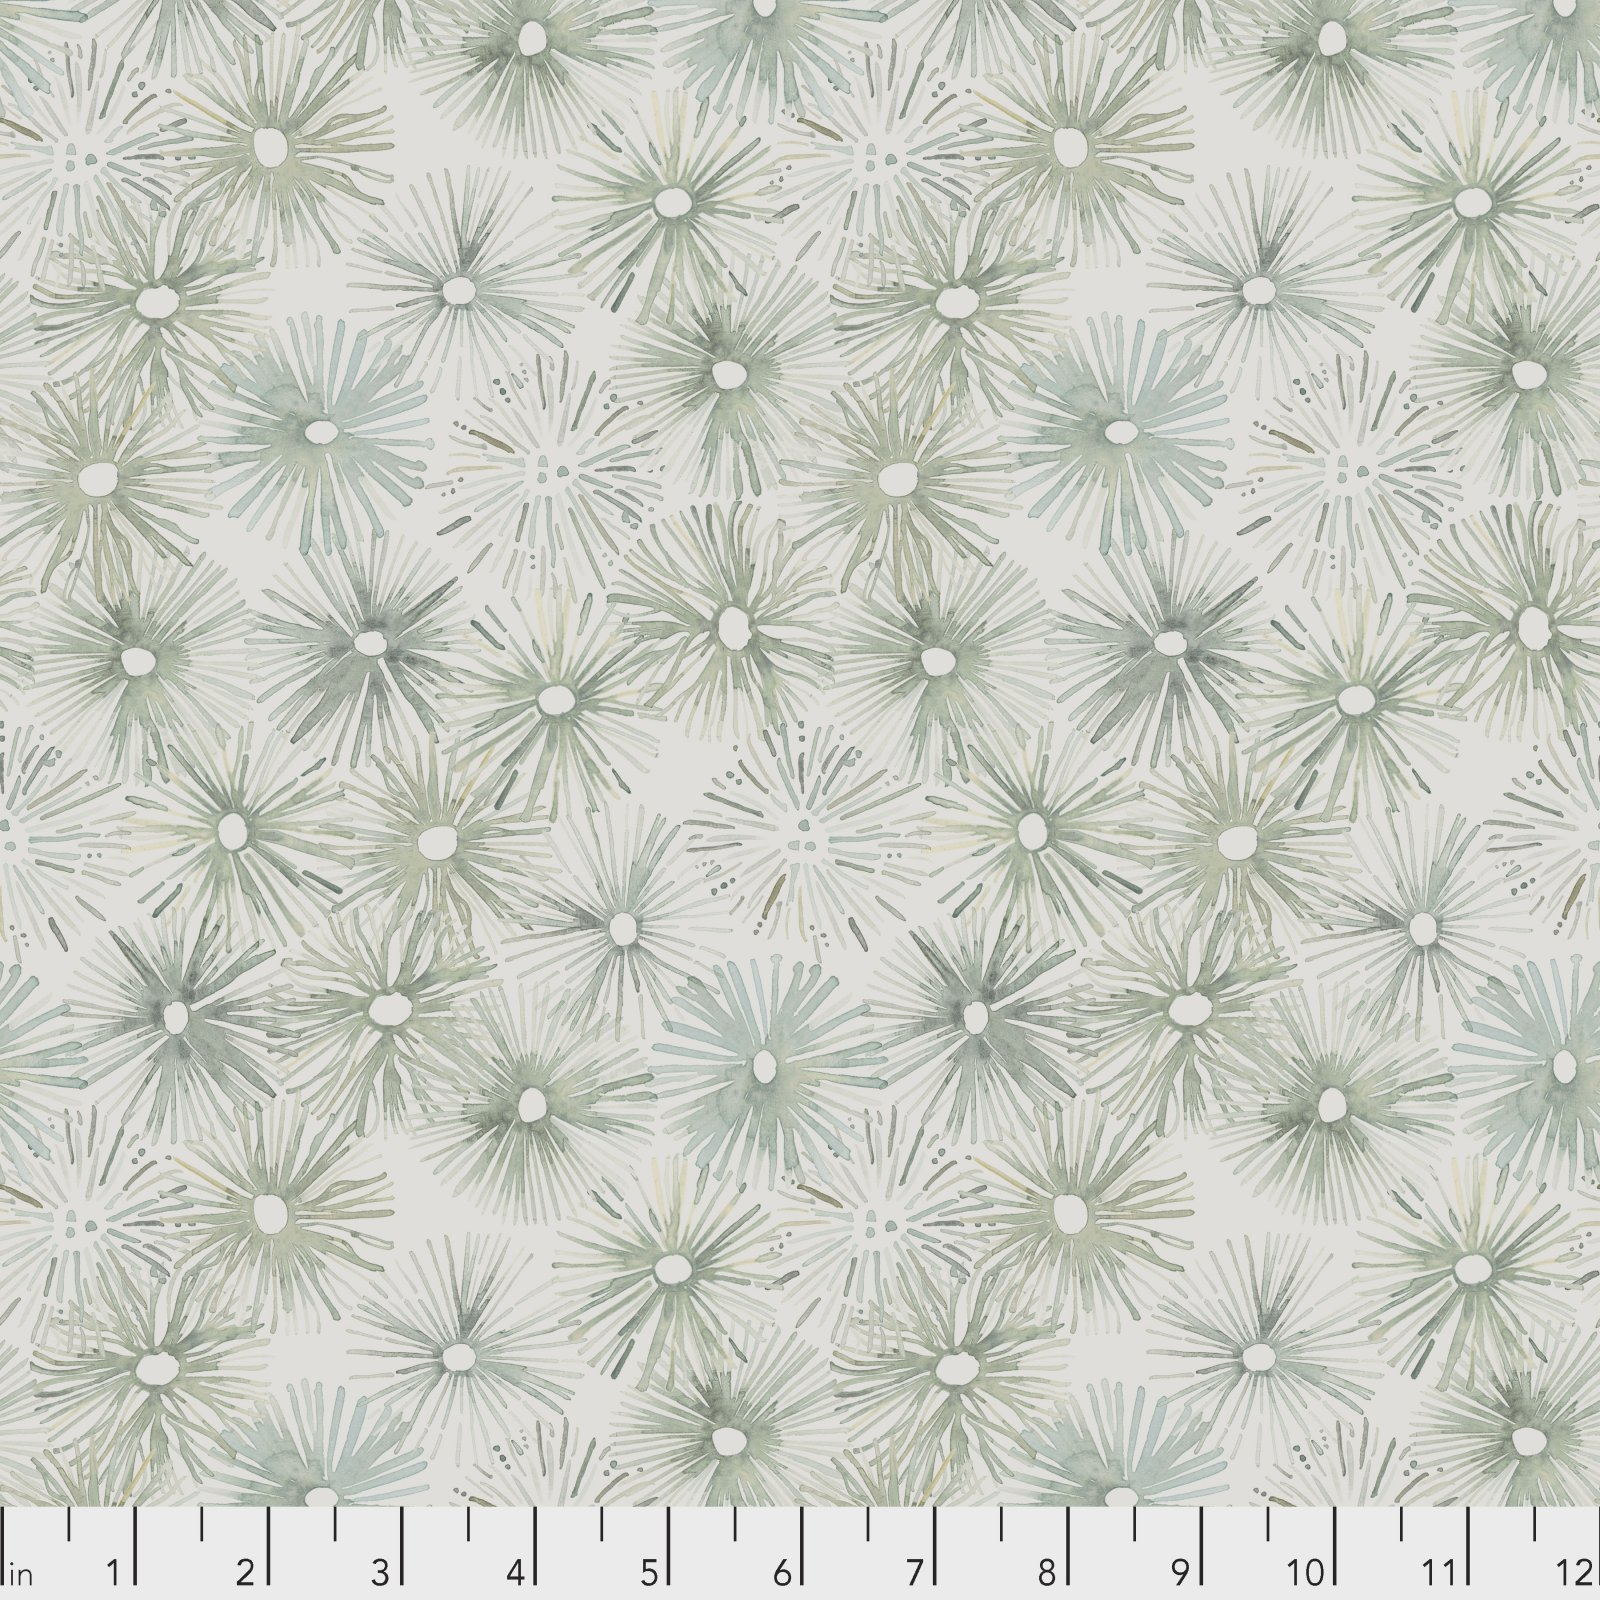 Time & Tide by Shell Rummel for Free Spirit Fabrics - Urchin - Sand